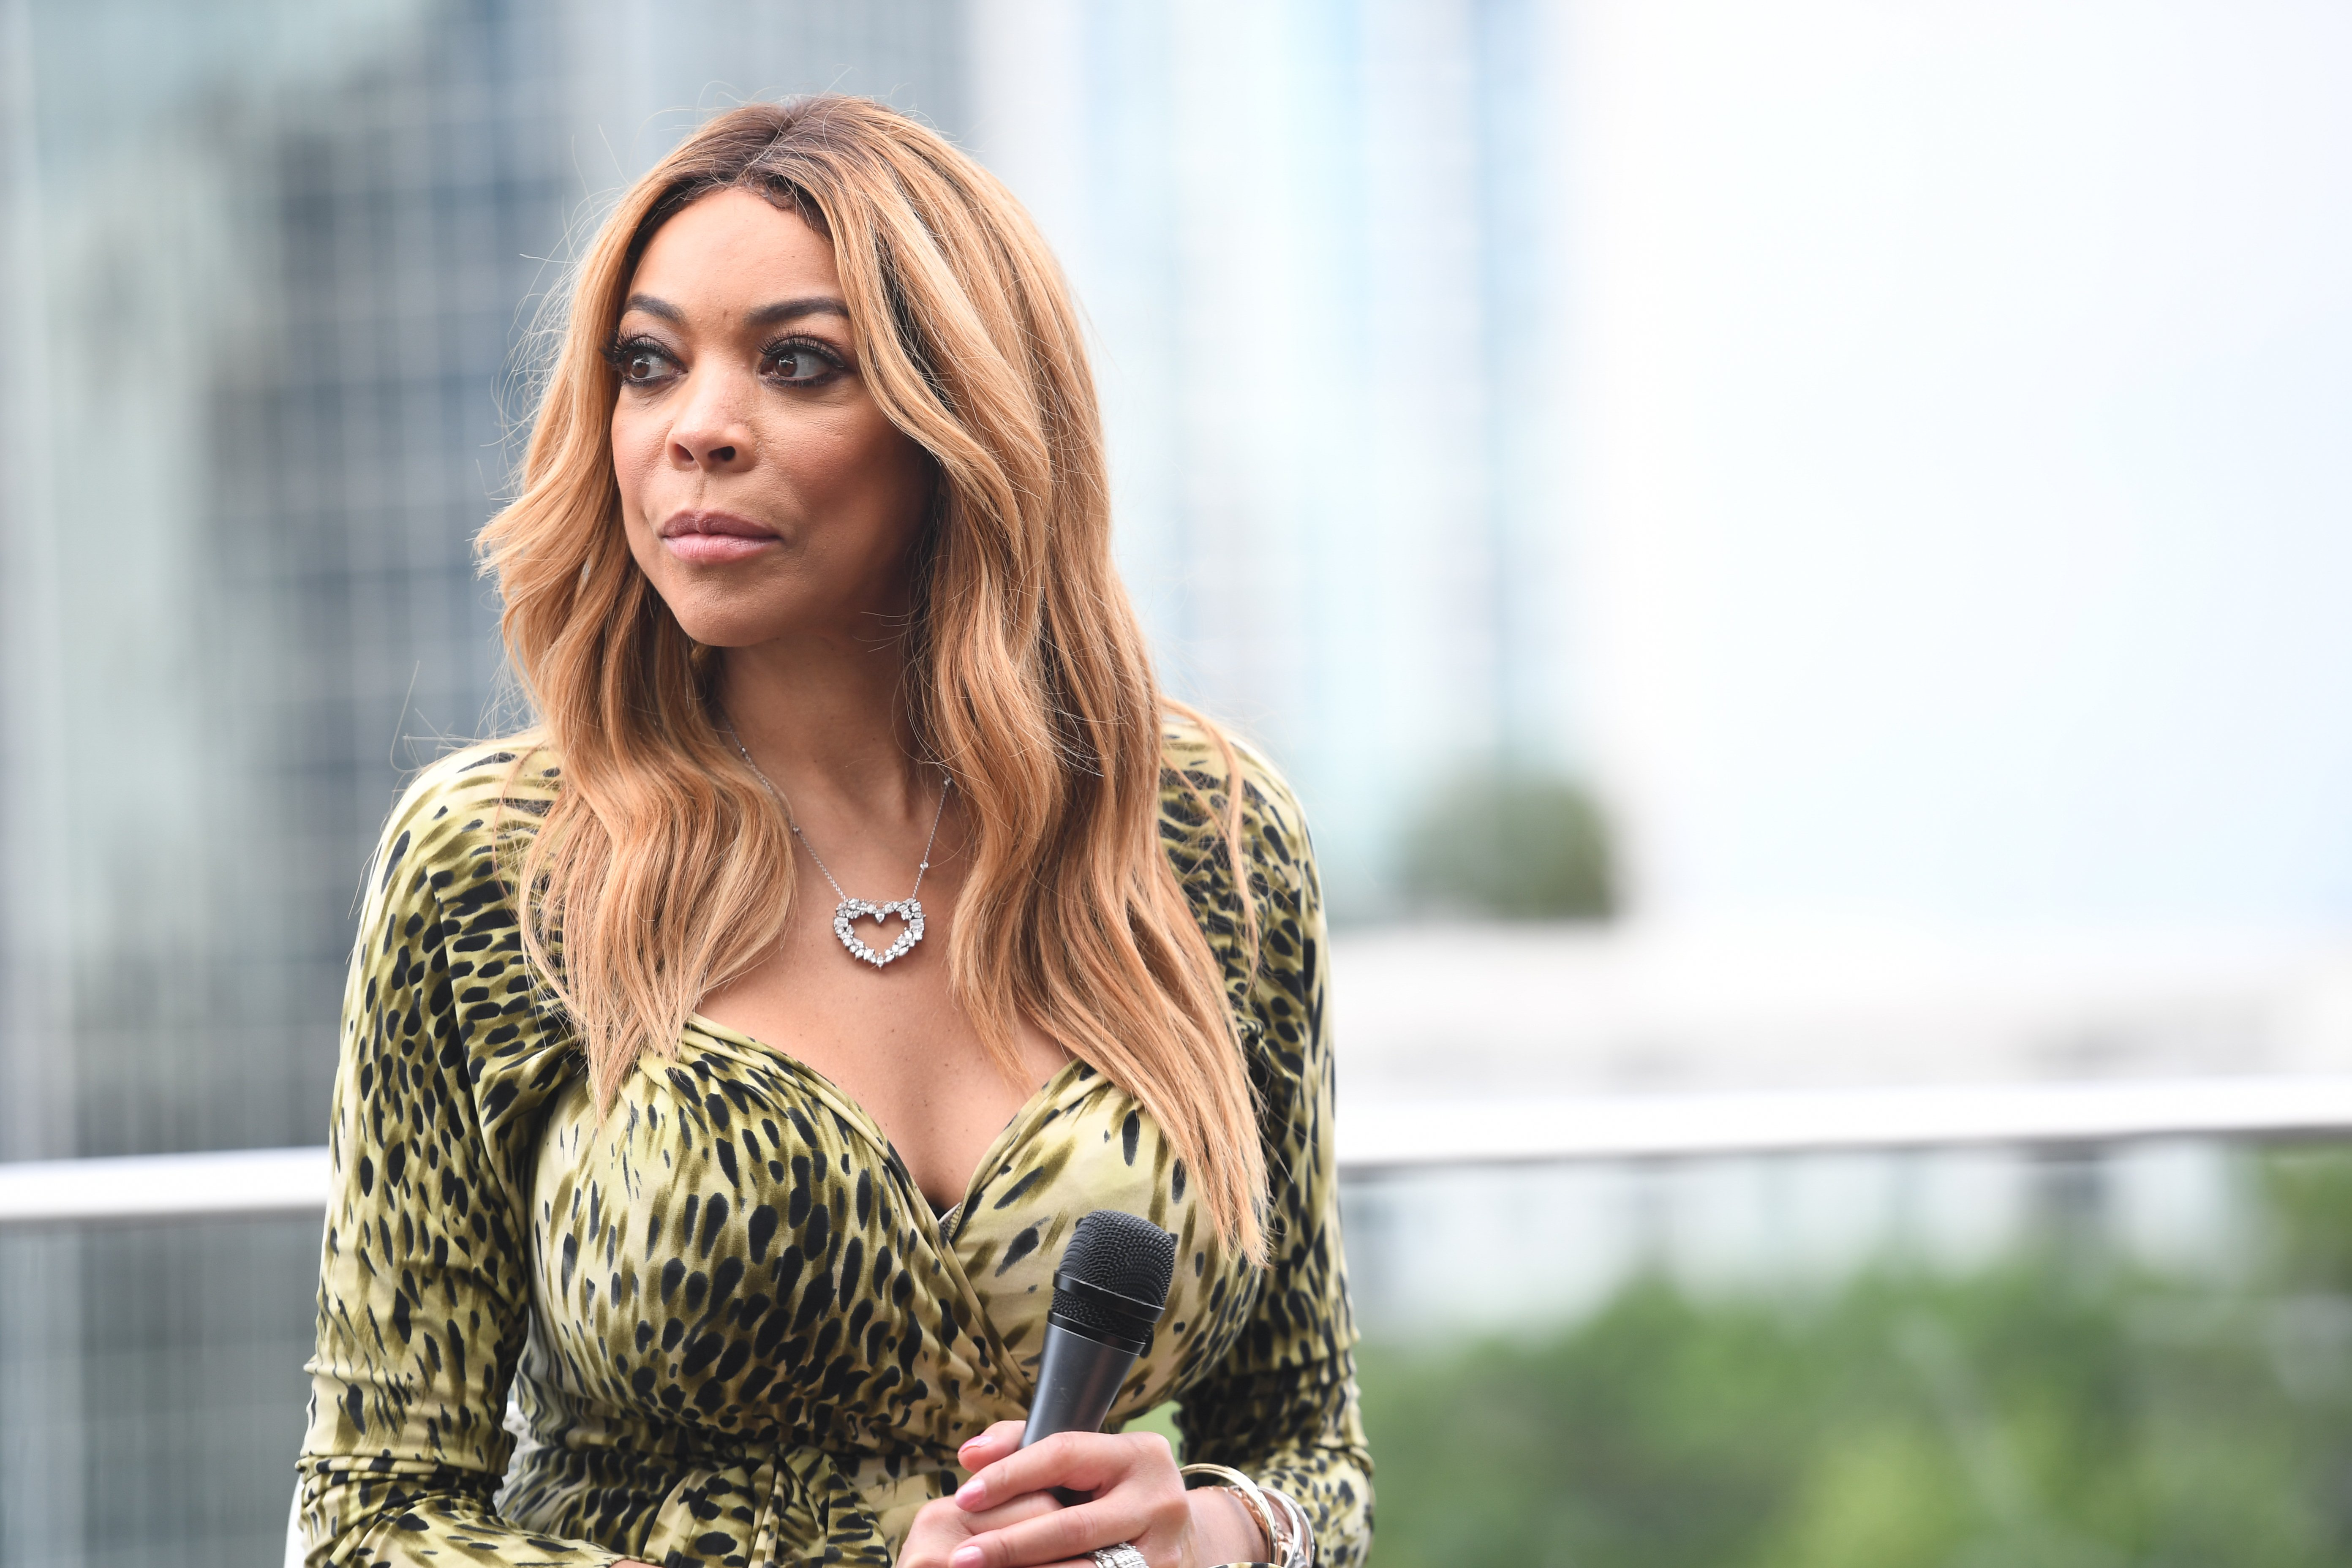 Wendy Williams attends Wendy Digital Event at Atlanta Tech Village Rooftop. | Photo: GettyImages